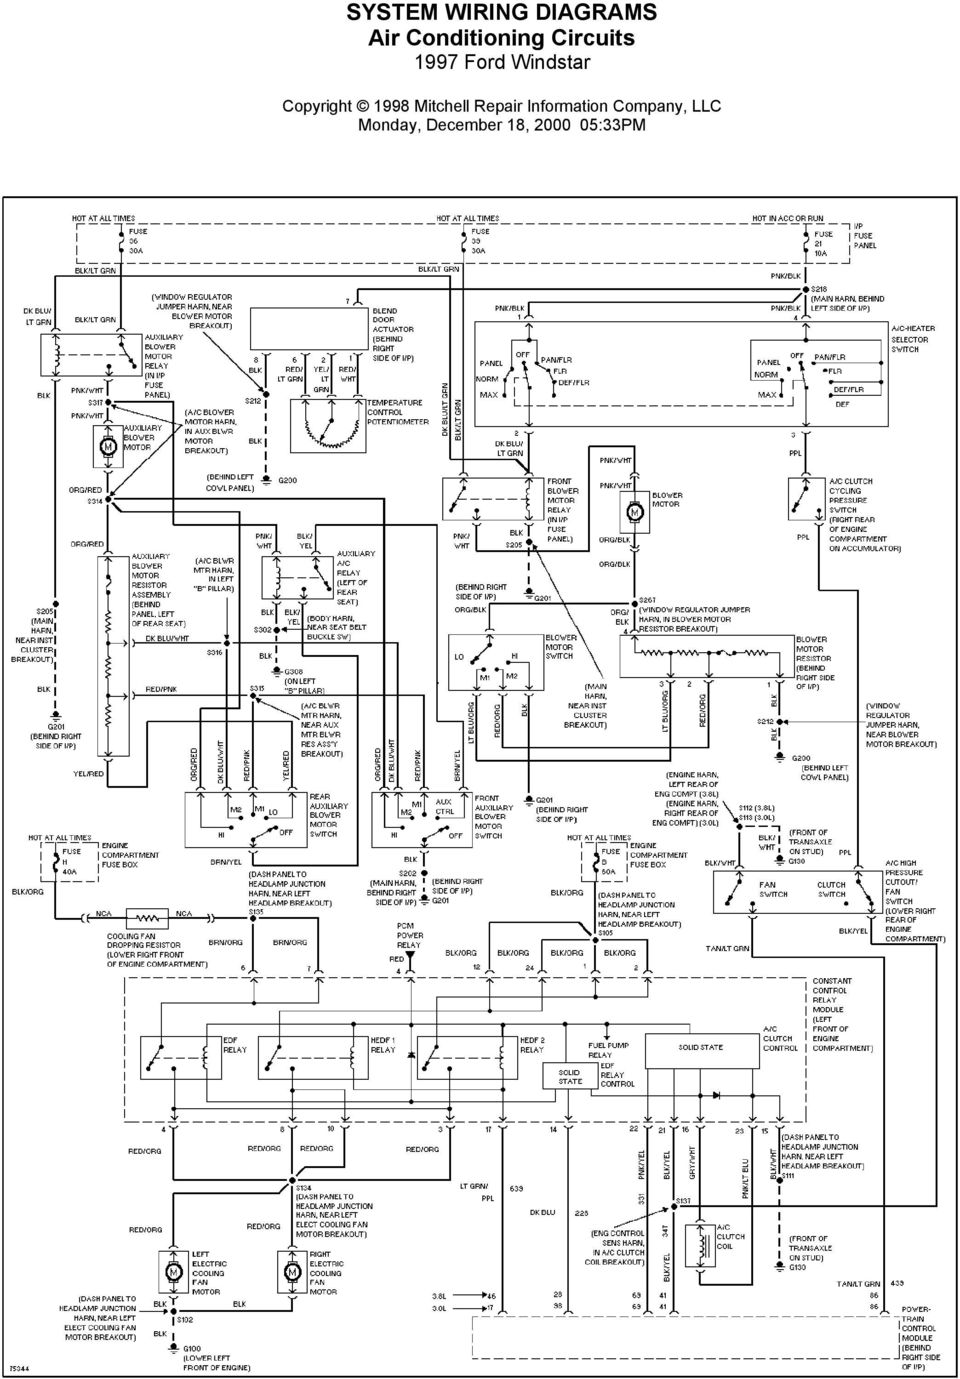 System Wiring Diagrams Air Conditioning Circuits 1997 Ford Windstar Cvt Transmission Diagram